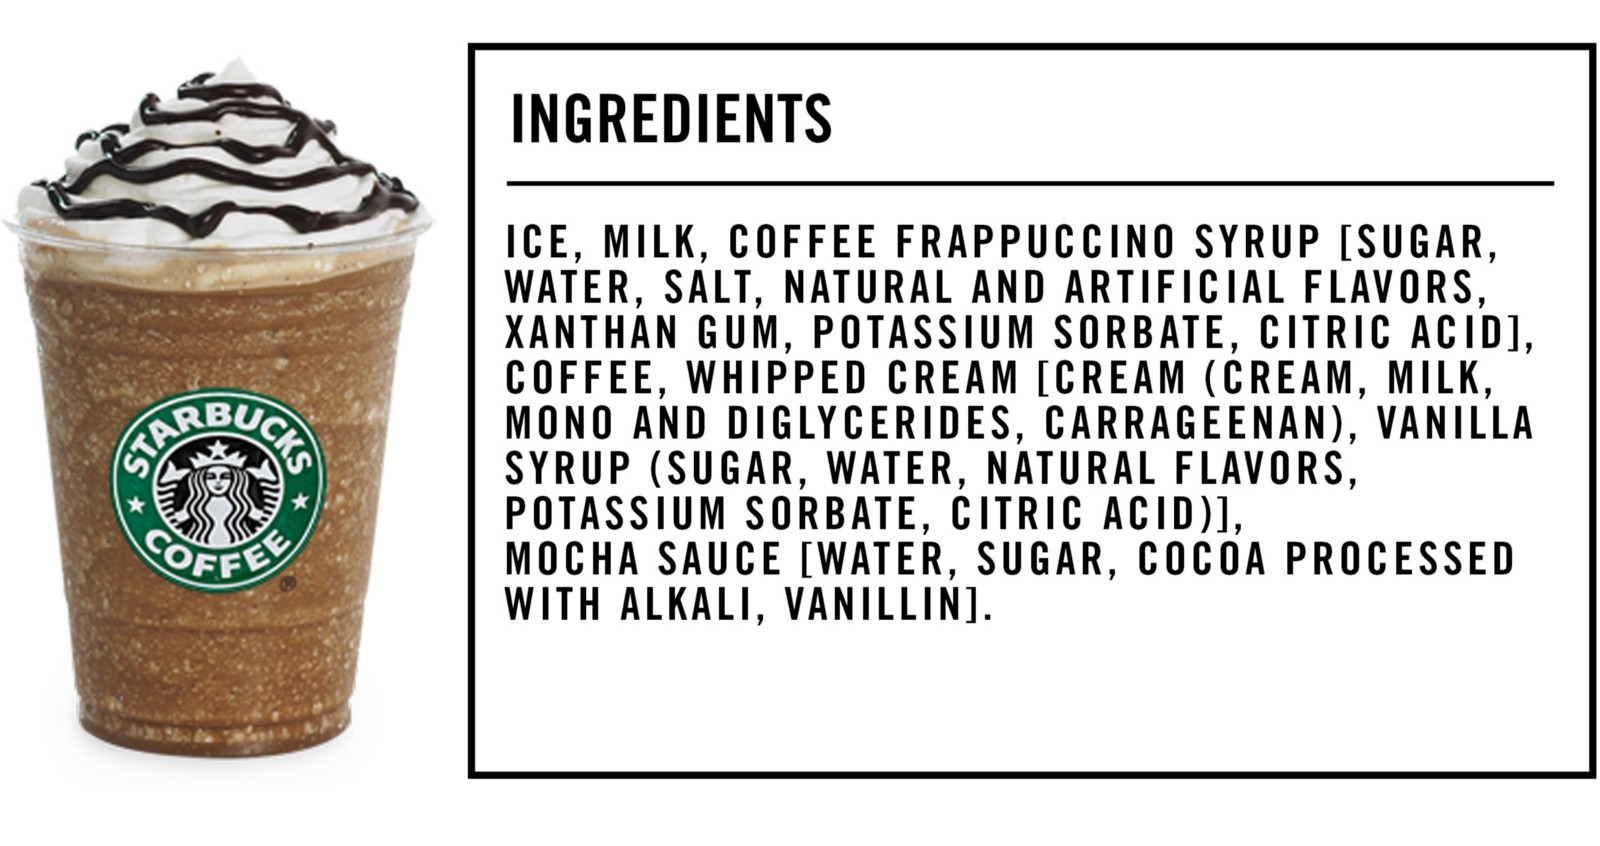 This Edition Starbucks Mocha Frappuccino Which Is Made From 16 Separate Ingredients Some Of Have Lists Their Own That Weve Broken